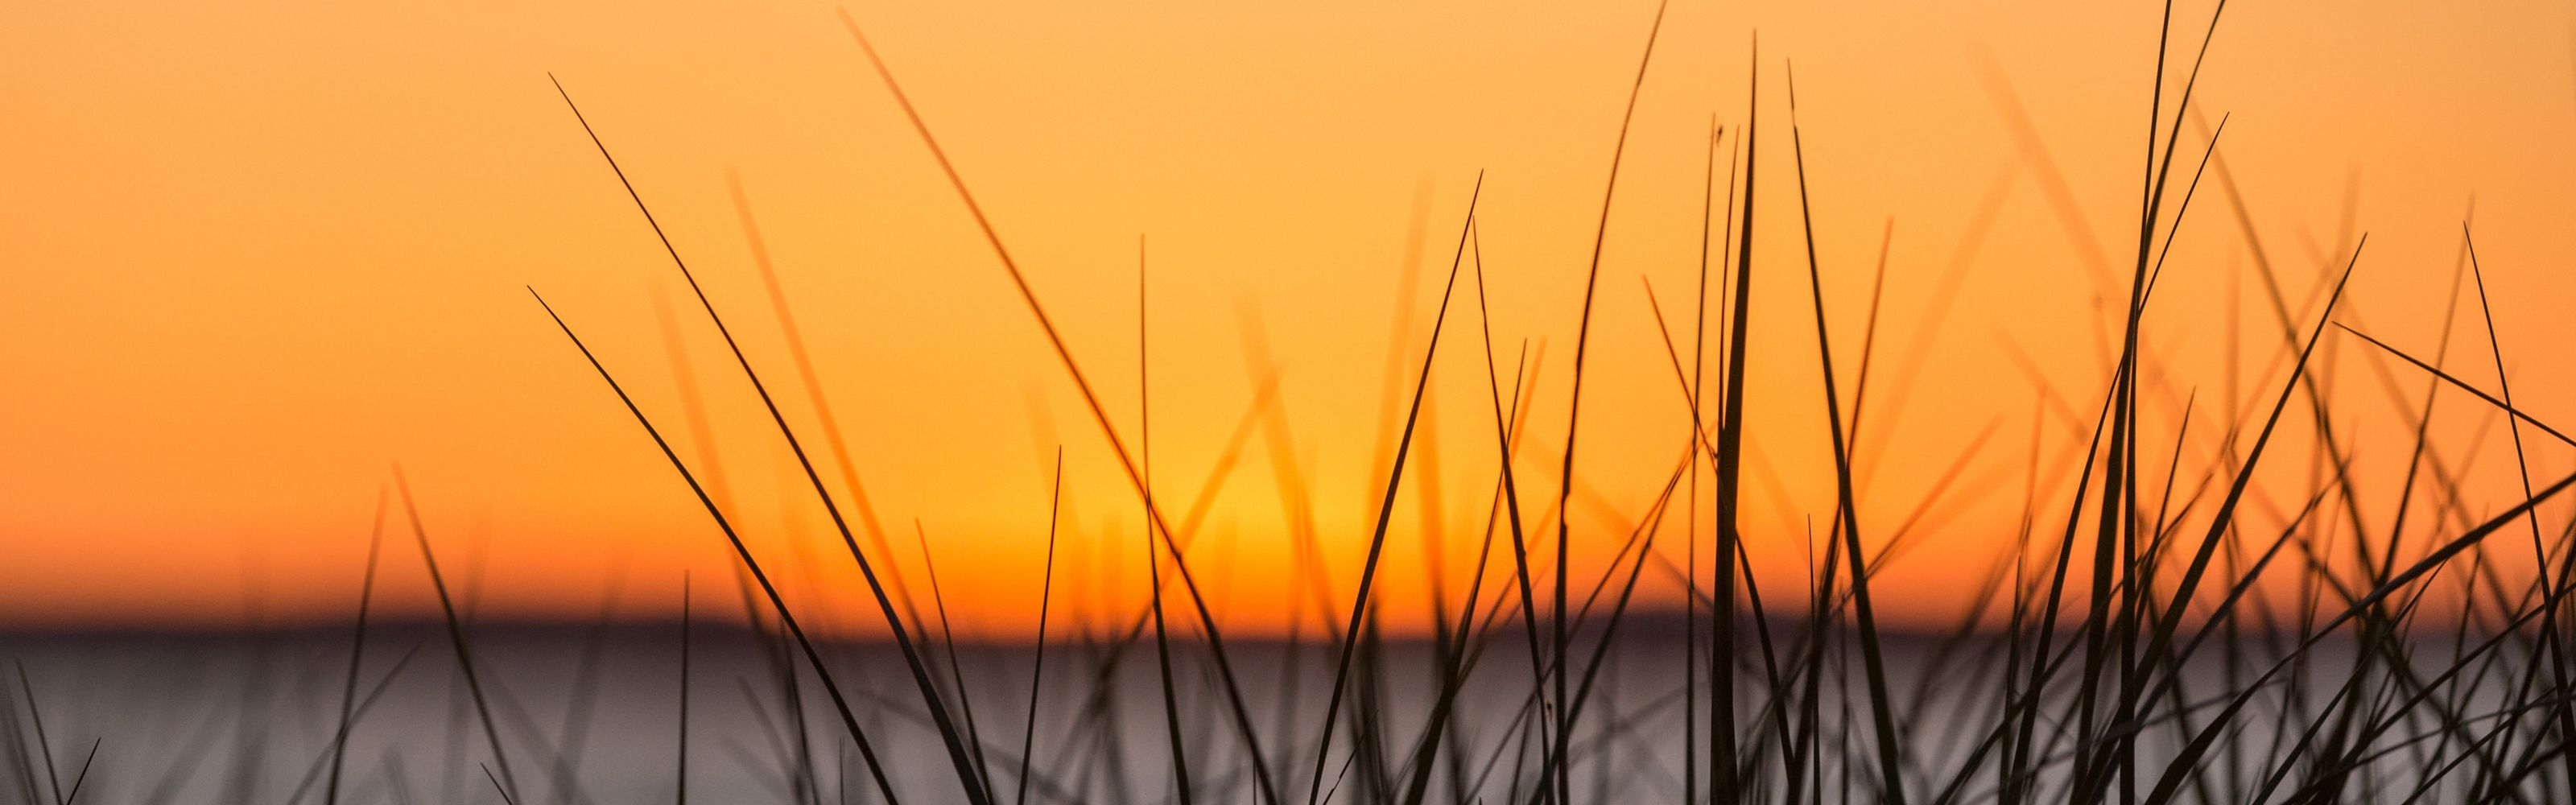 Tall grass in front of a lake at sunset.